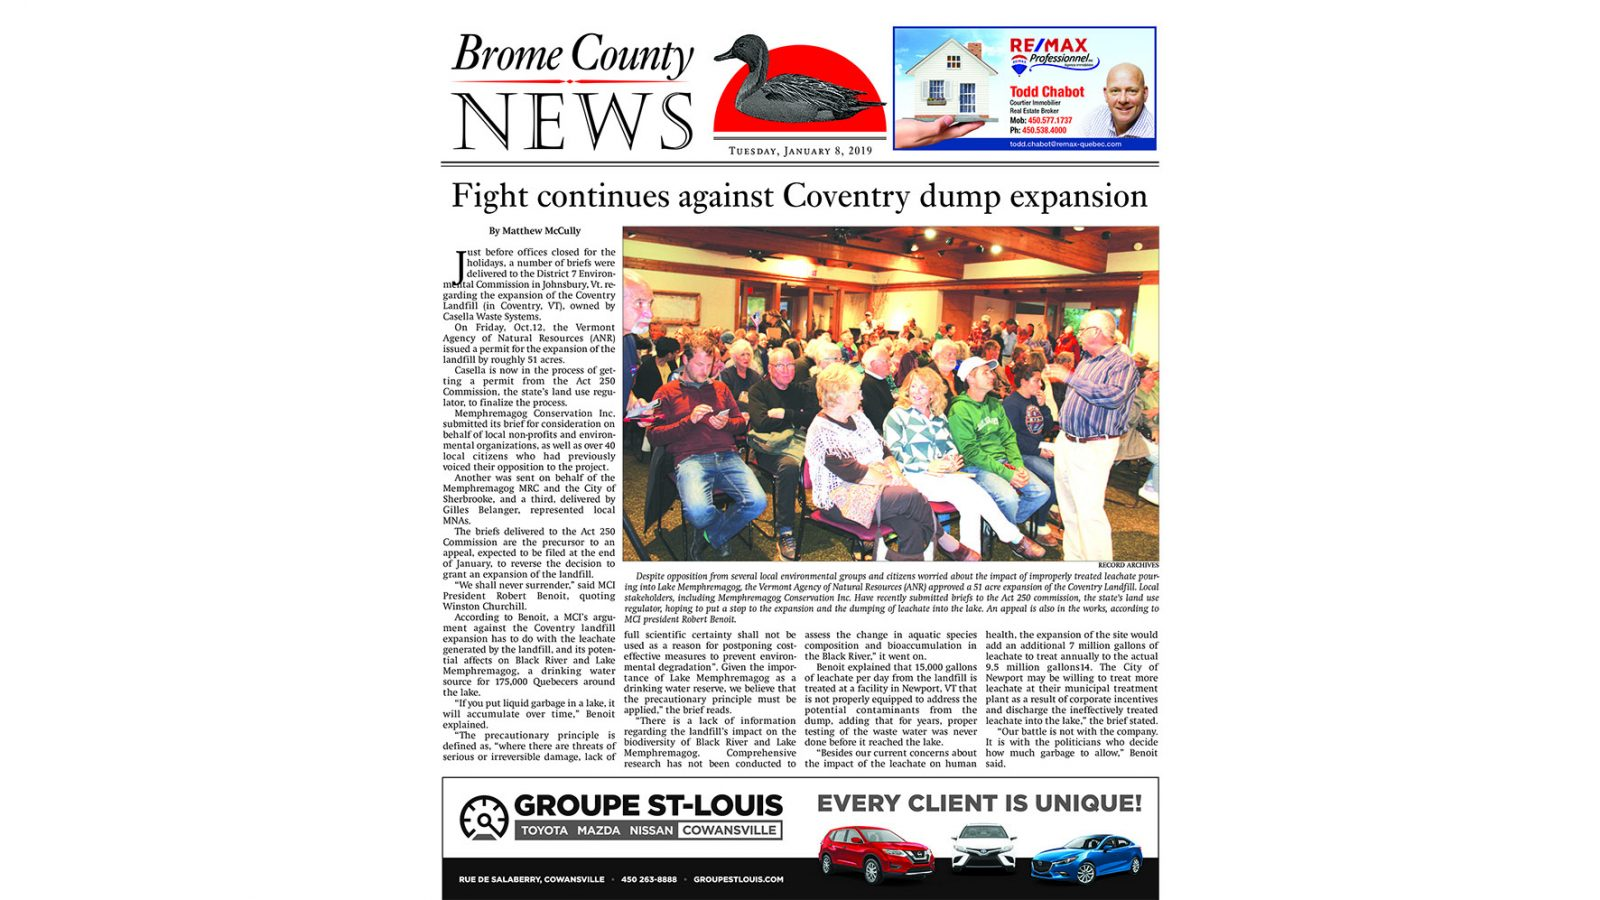 Brome County News – January 8, 2019 edition